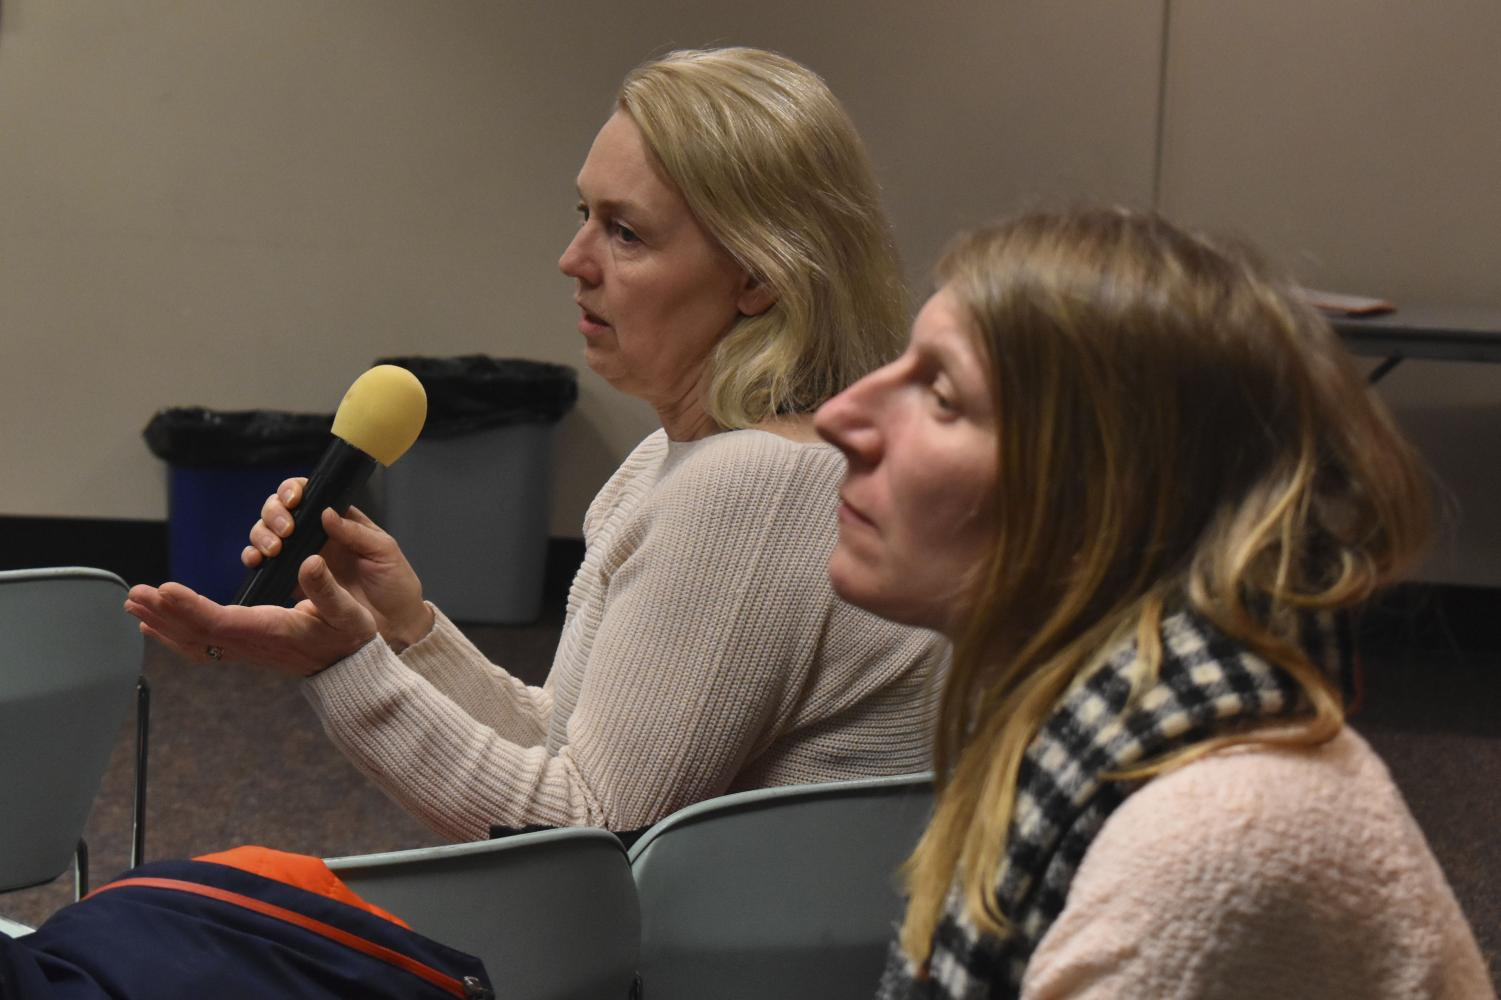 A St. Louis Park parent asks a question regarding the time change for schools in the St. Louis Park School District during an informational meeting Feb. 21. According to superintendent Astein Osei, the school board will likely make the final decision in March.